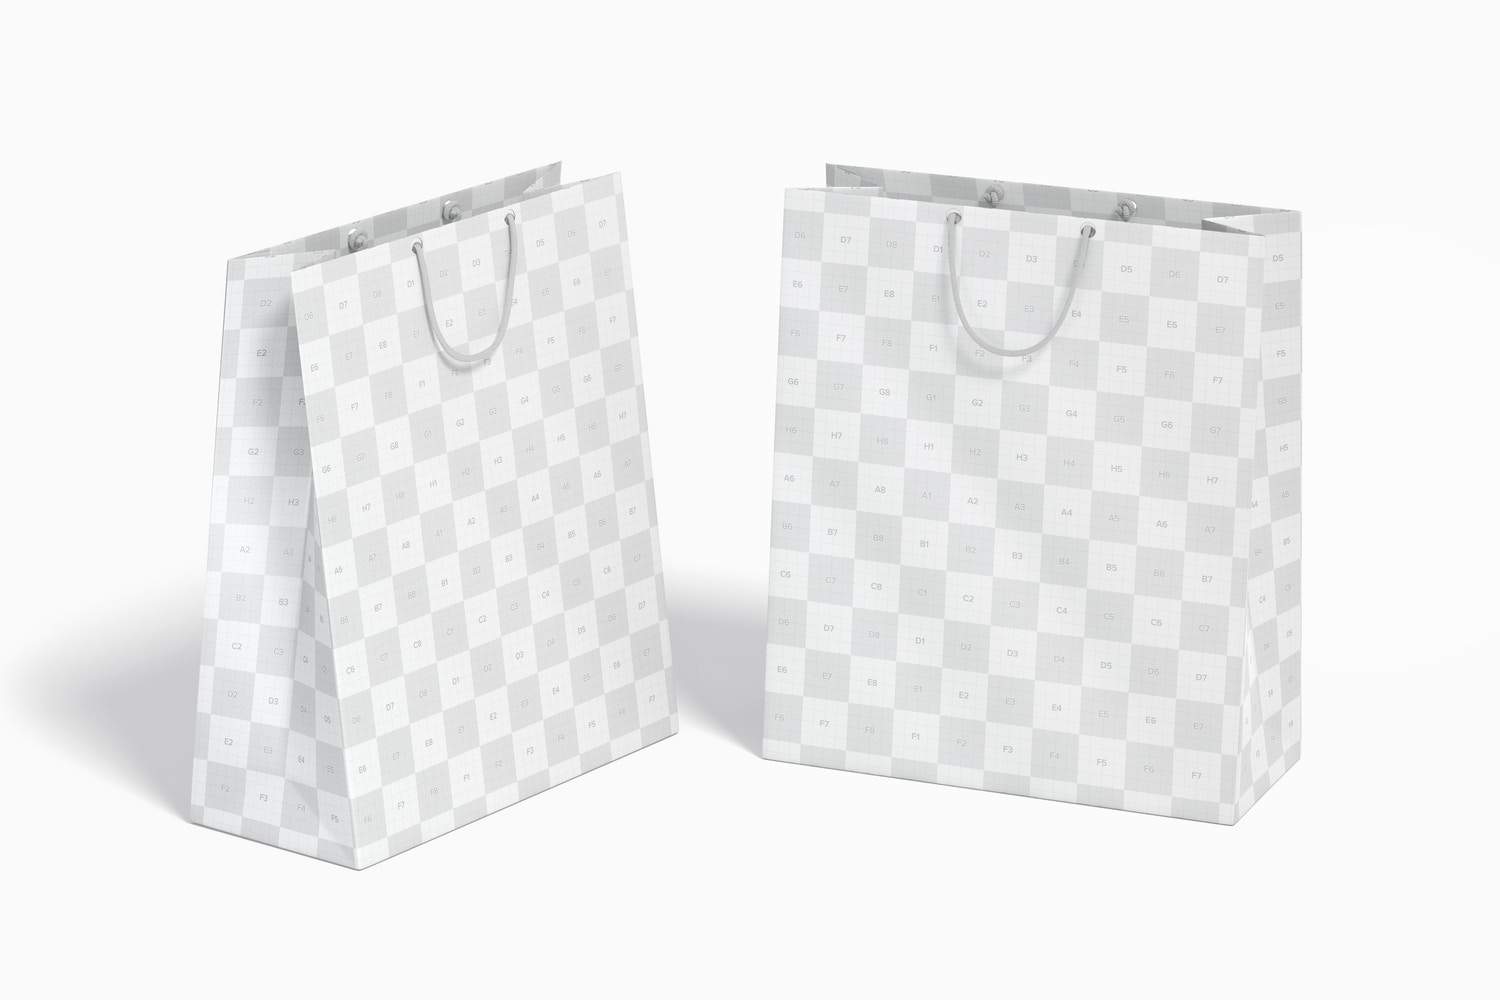 Big Paper Gift Bag With Rope Handle Mockup, Perspective View